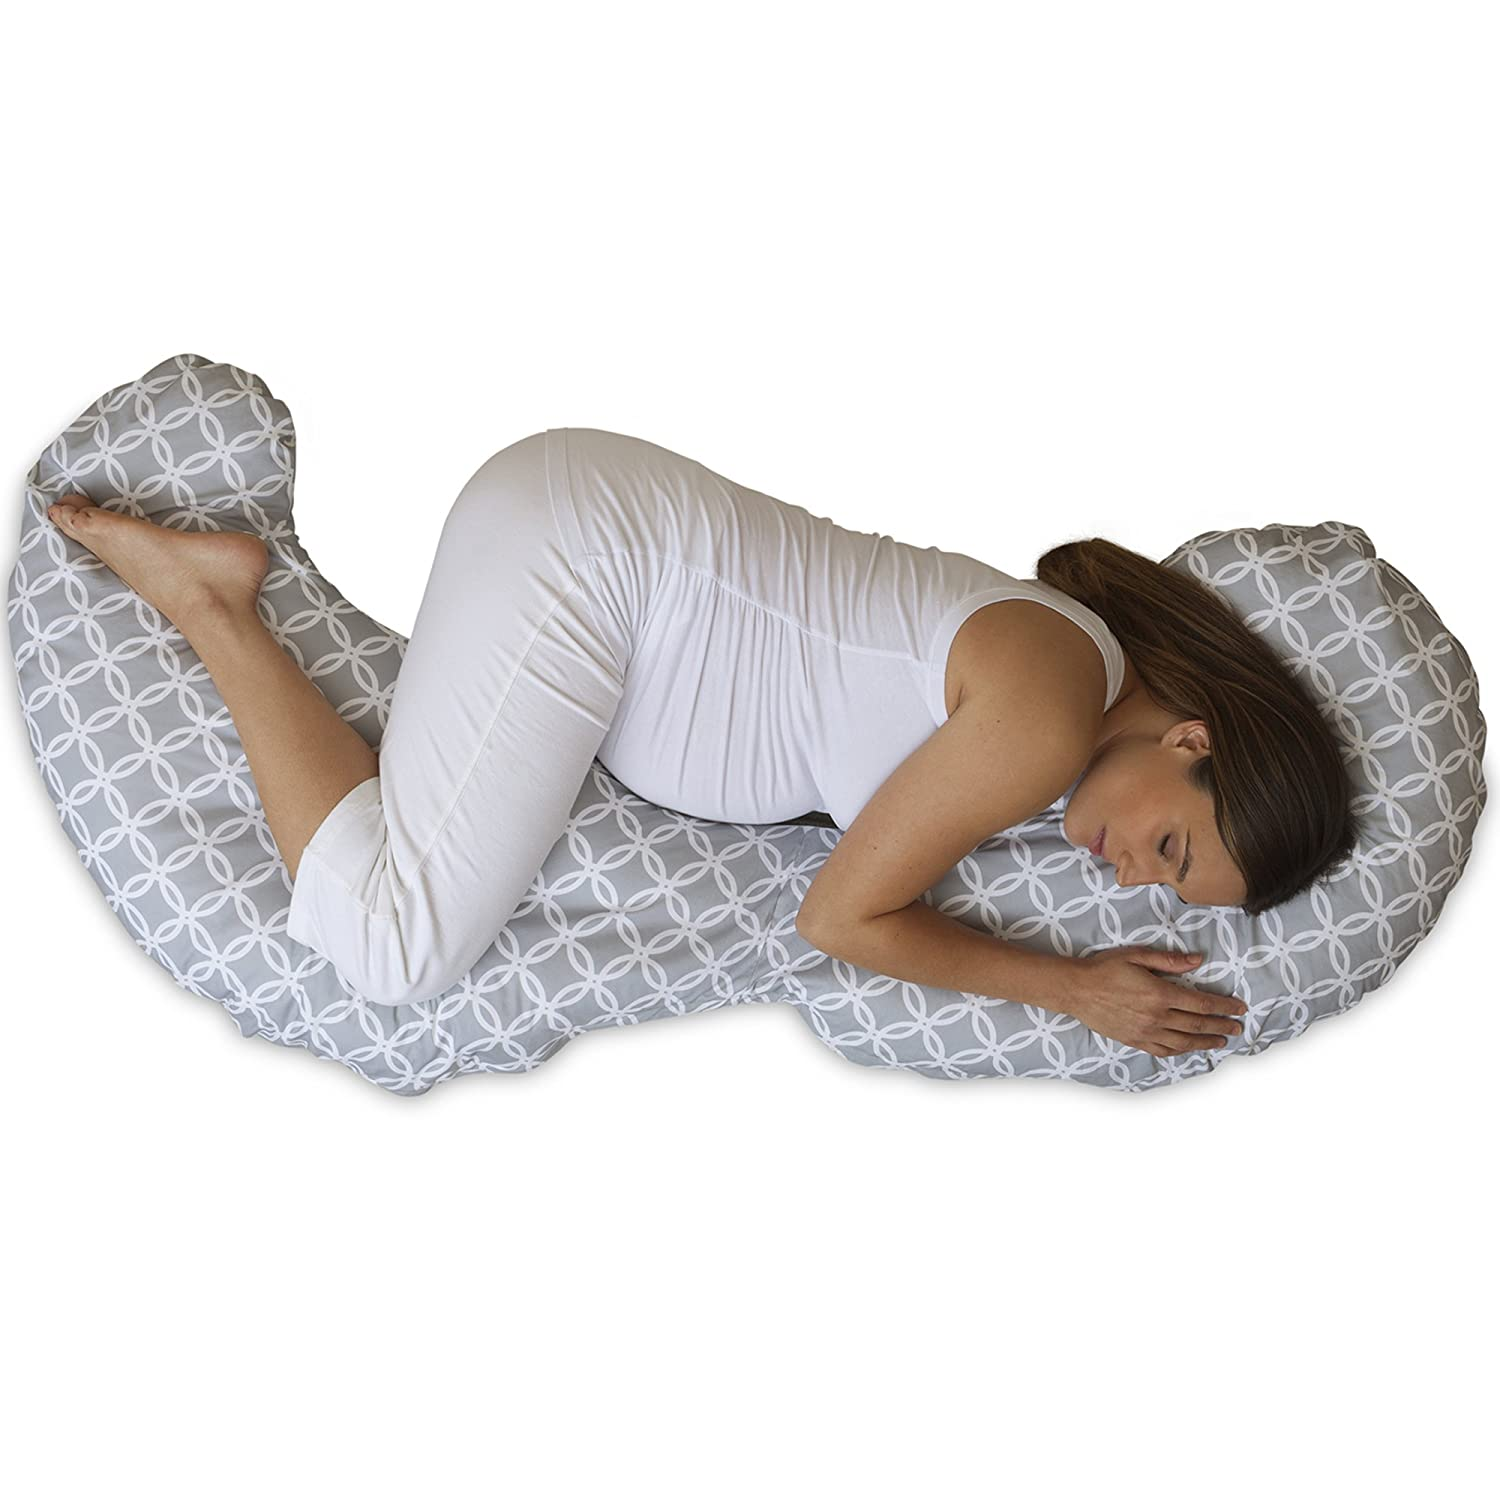 The right pregnancy body pillow provides extra support to the growing bellow of an expectant mother. This article reviews the best pregnancy body pillow in 2020.